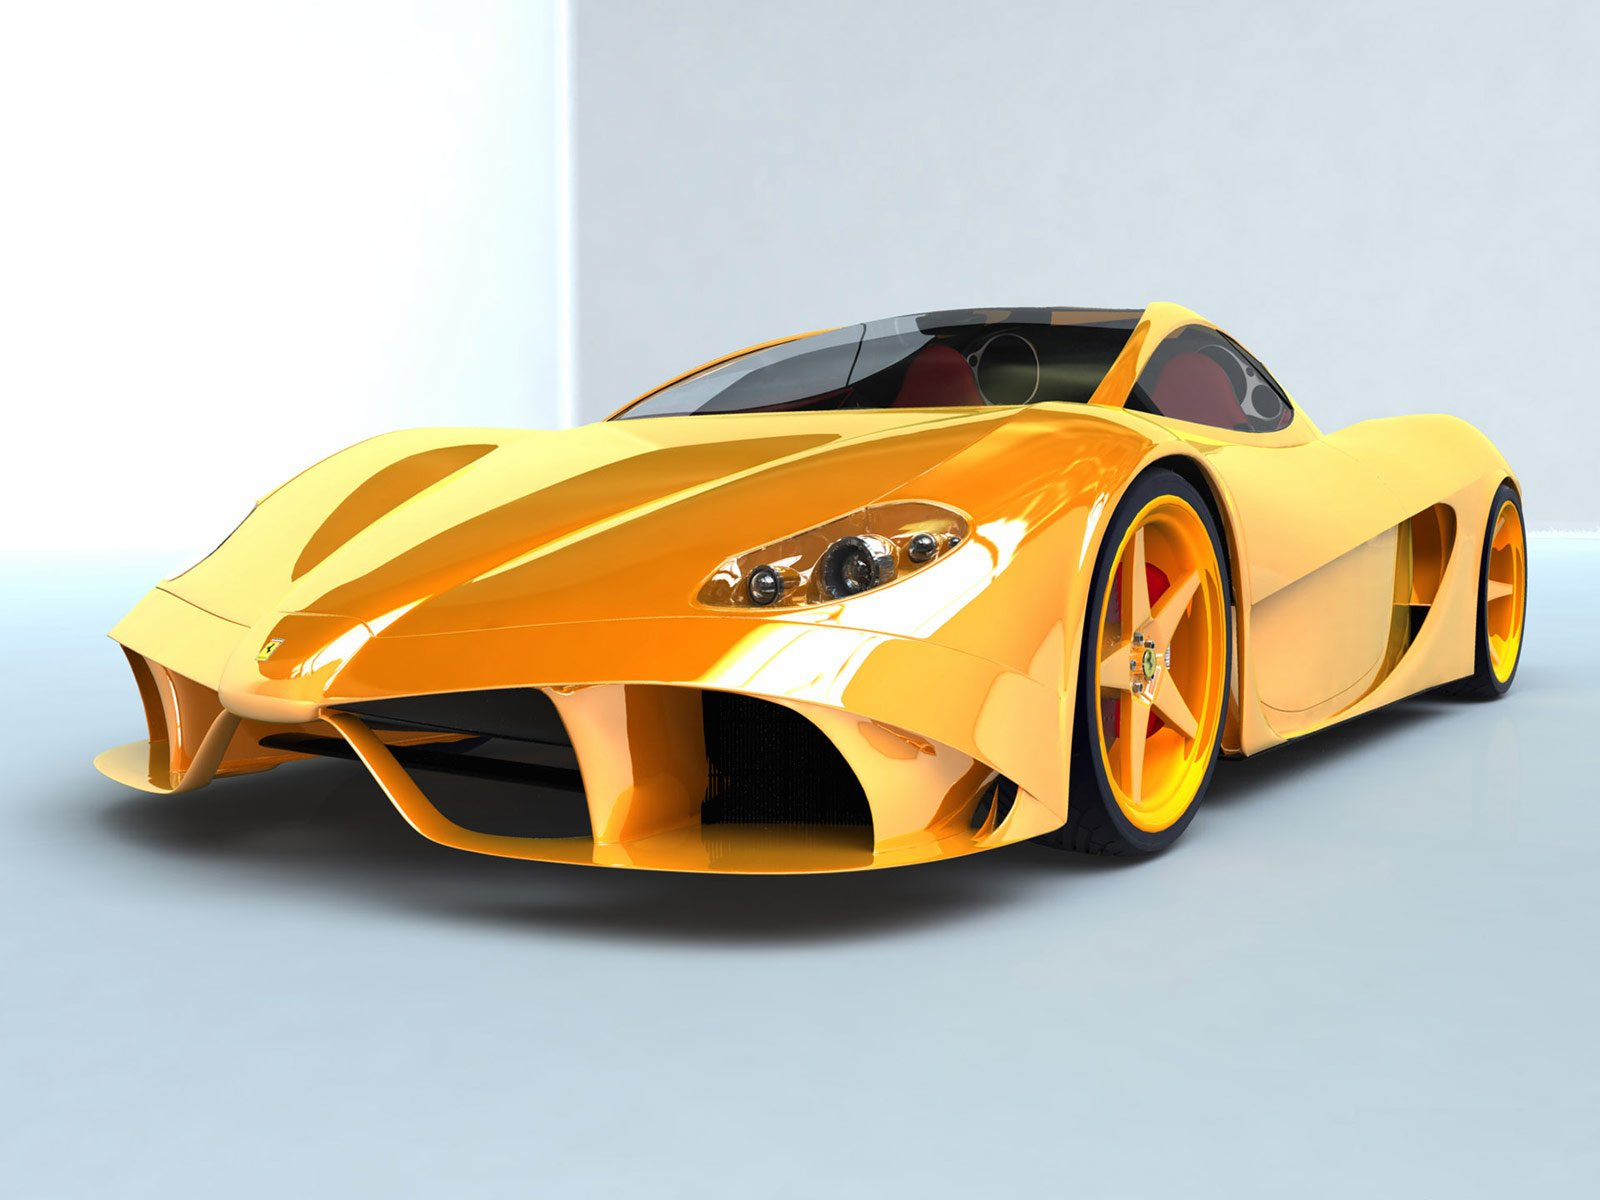 Cars News and Images Sports cars 1600x1200